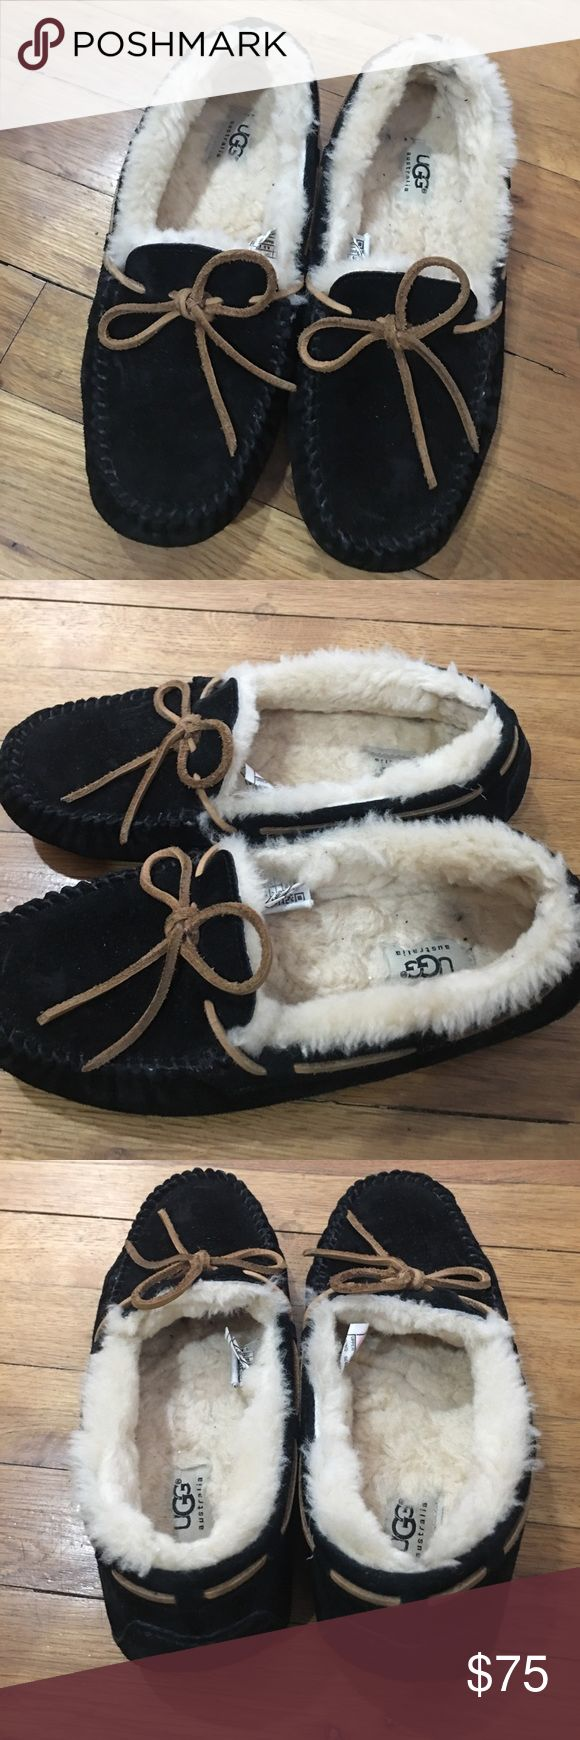 Women's UGG Dakota Moccasins Like new except a small discoloration on the left inside show see pictures the sole isn't worn I only wore these a couple of times UGG Shoes Moccasins